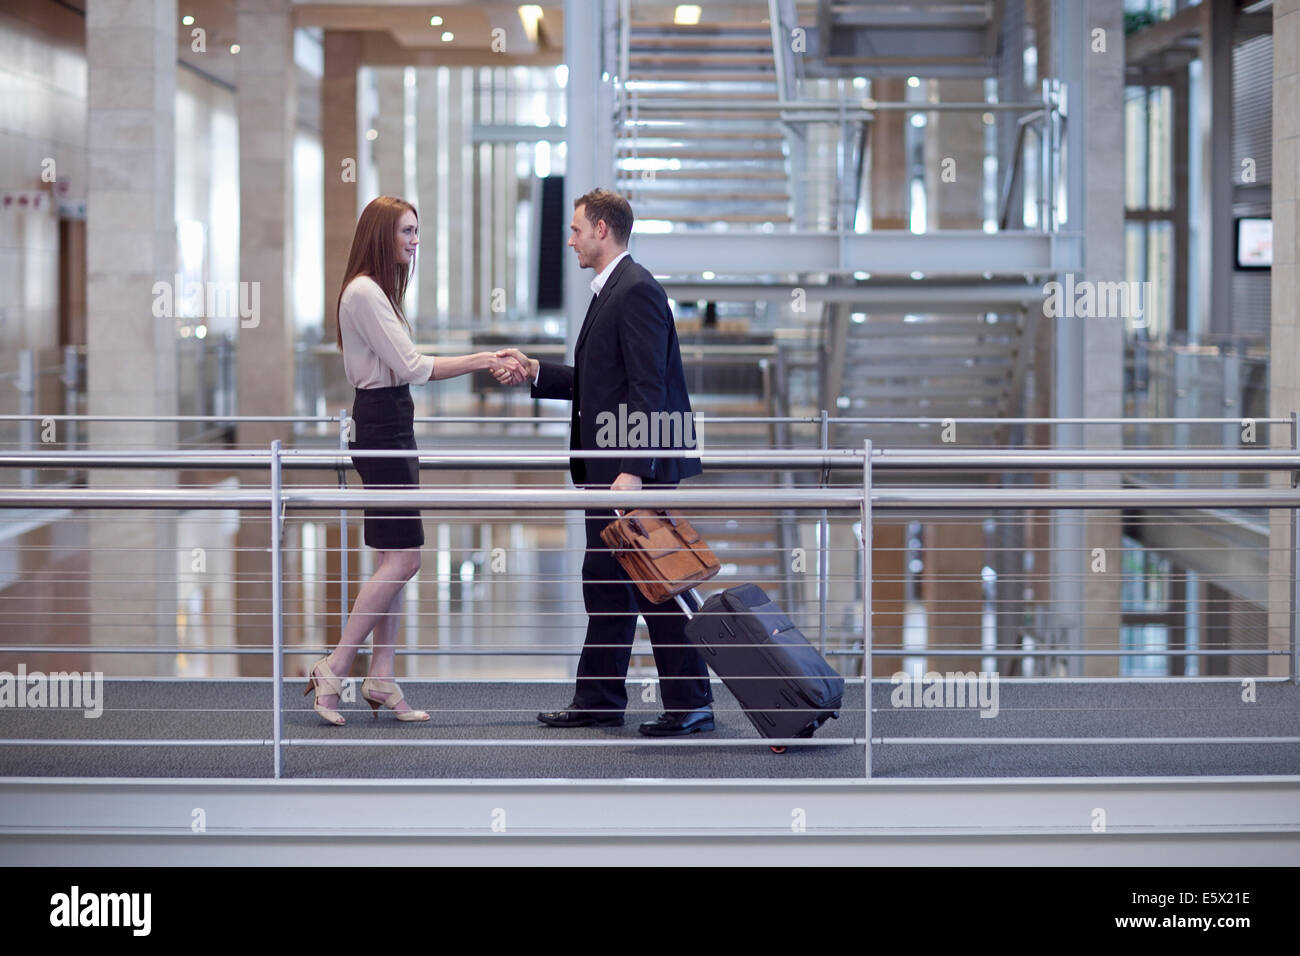 Mid adult businesswoman greeting businessman on conference centre walkway - Stock Image